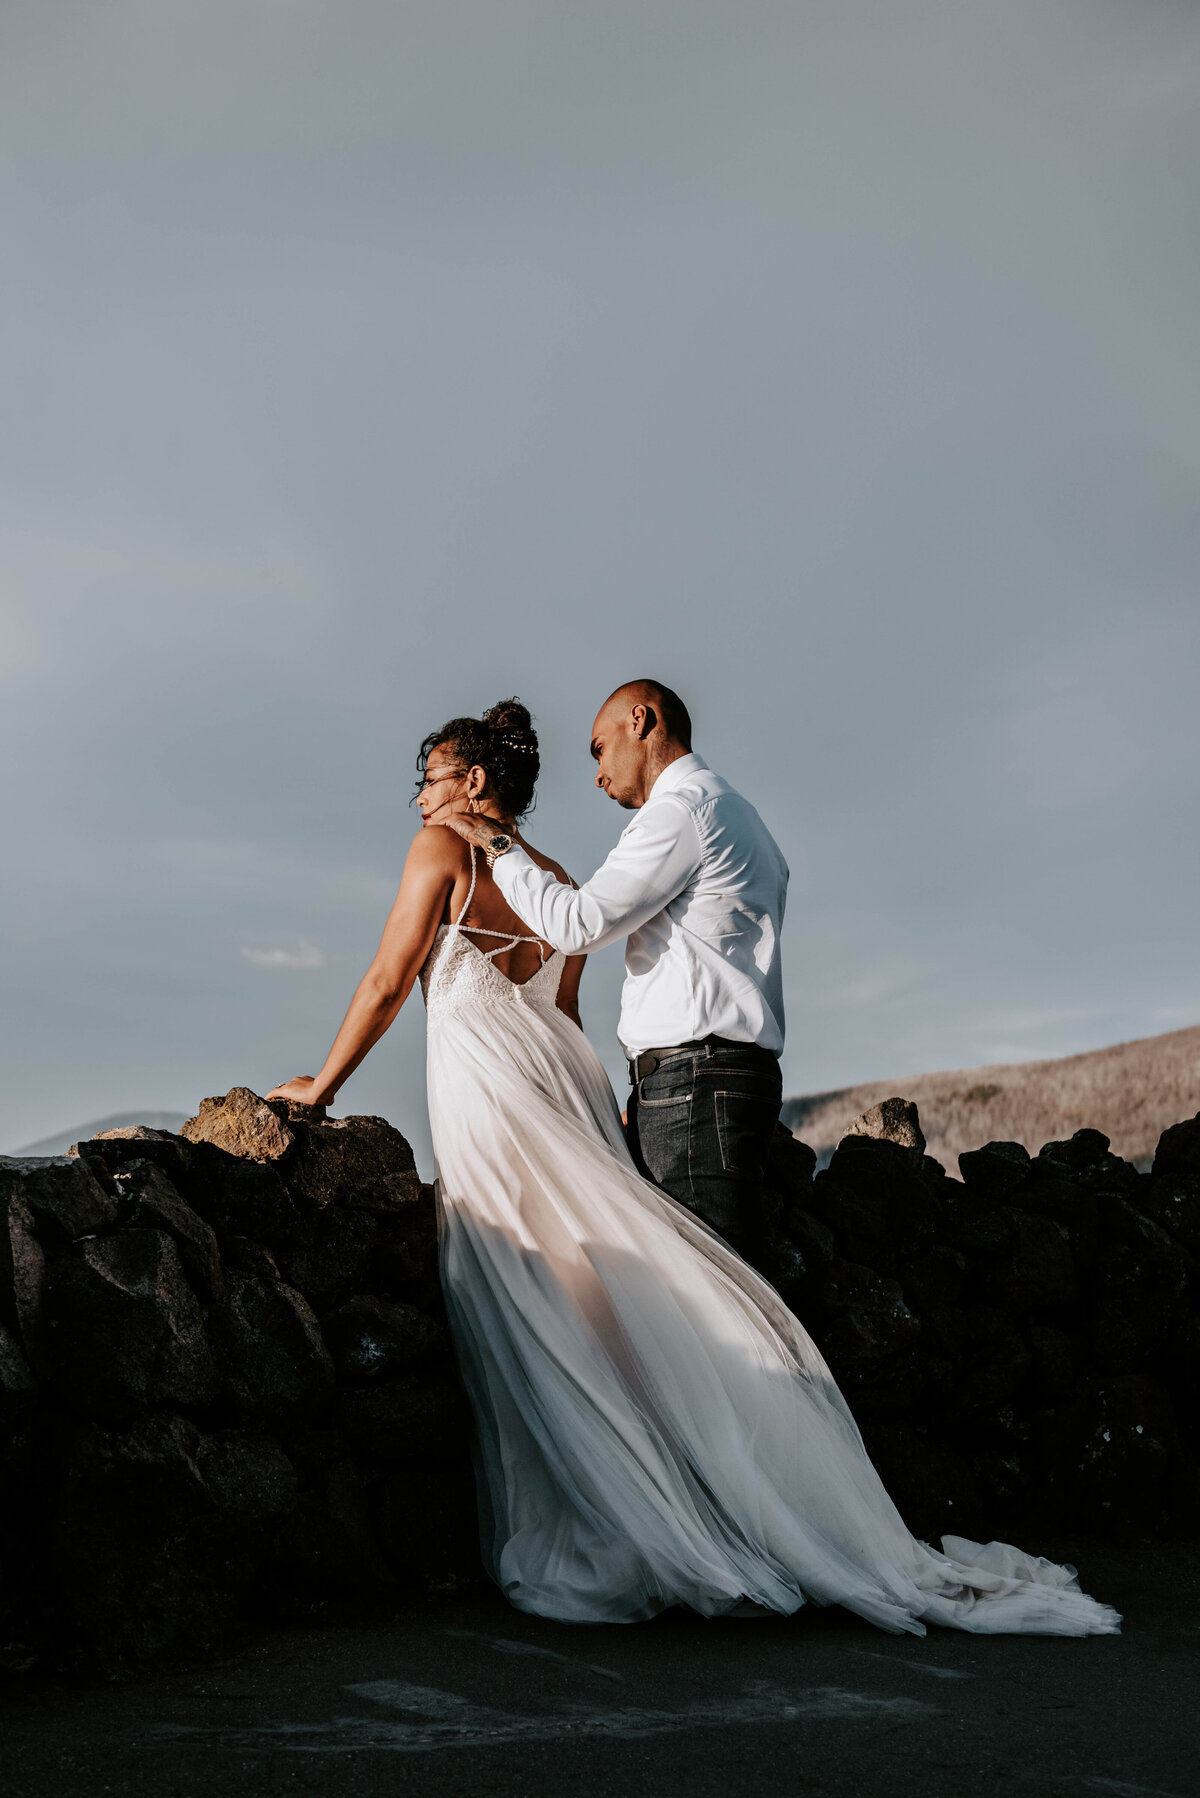 sisters-bend-oregon-summer-wedding-elopement-photographer-dress-scenic-byway-wedding-deewright-observatory-4956